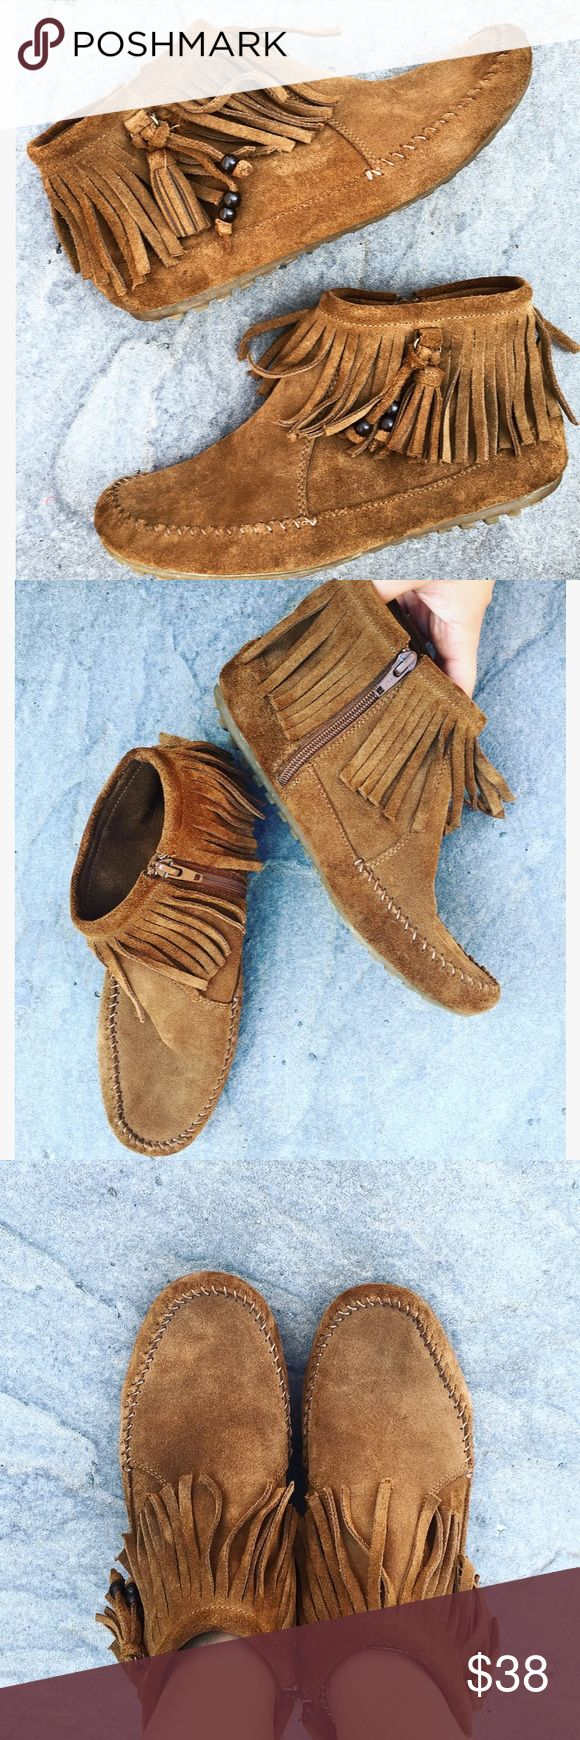 Minnetonka fringe bootie moccasins Ankle high, super soft, so incredibly comfy. Worn as slippers or out. Minnetonka Shoes Moccasins